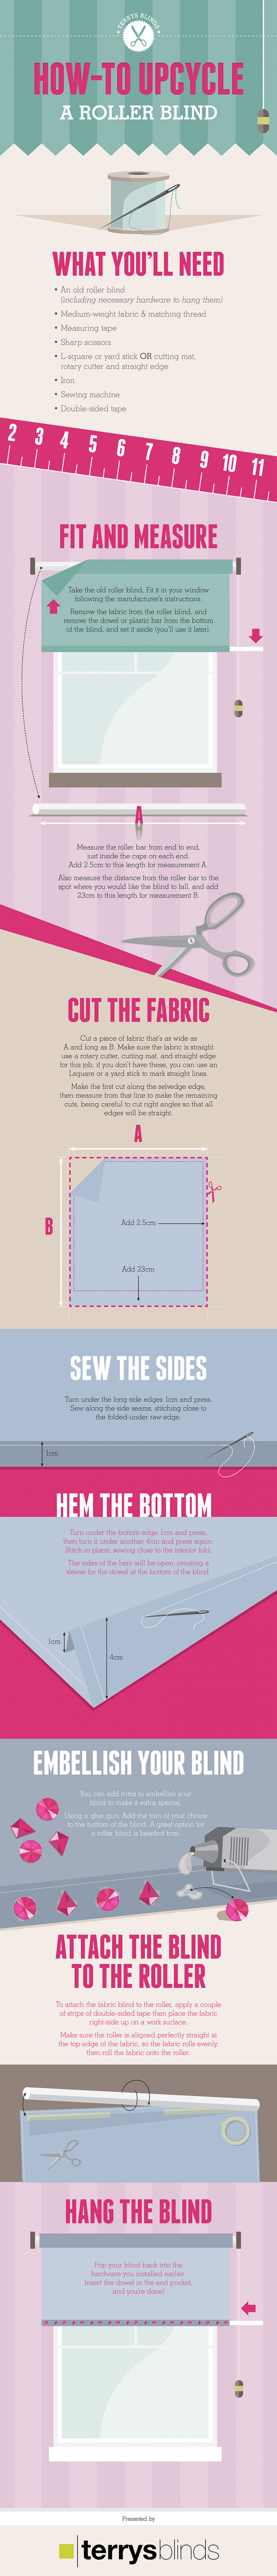 How-to upcycle a roller blind Infographic